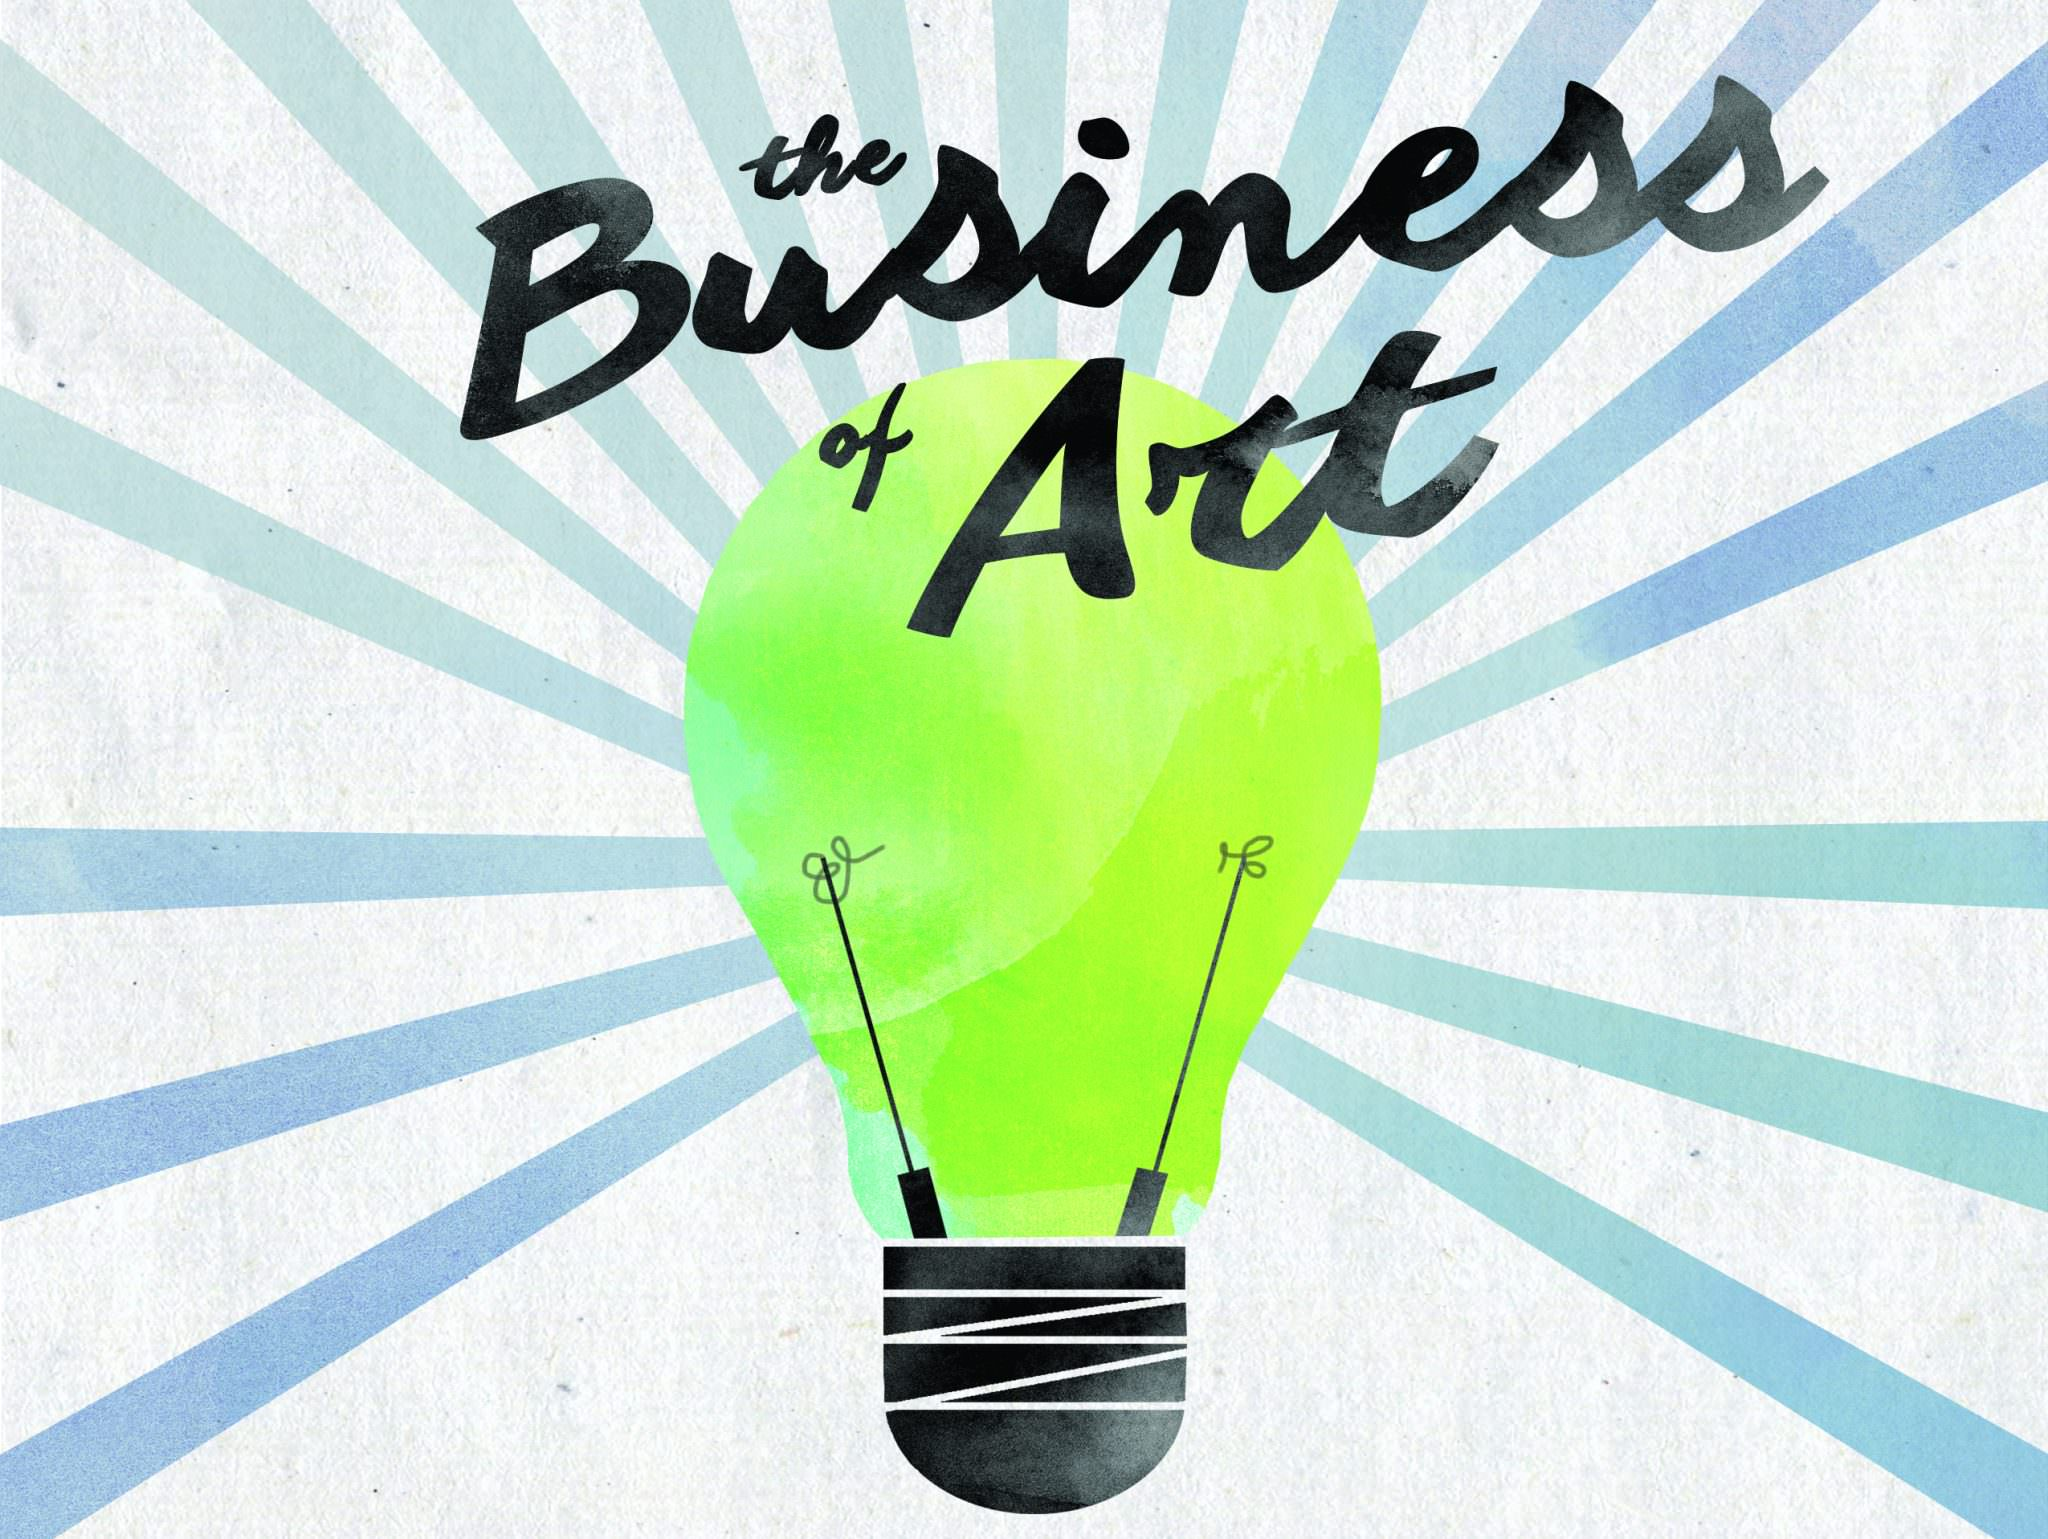 Business of Art